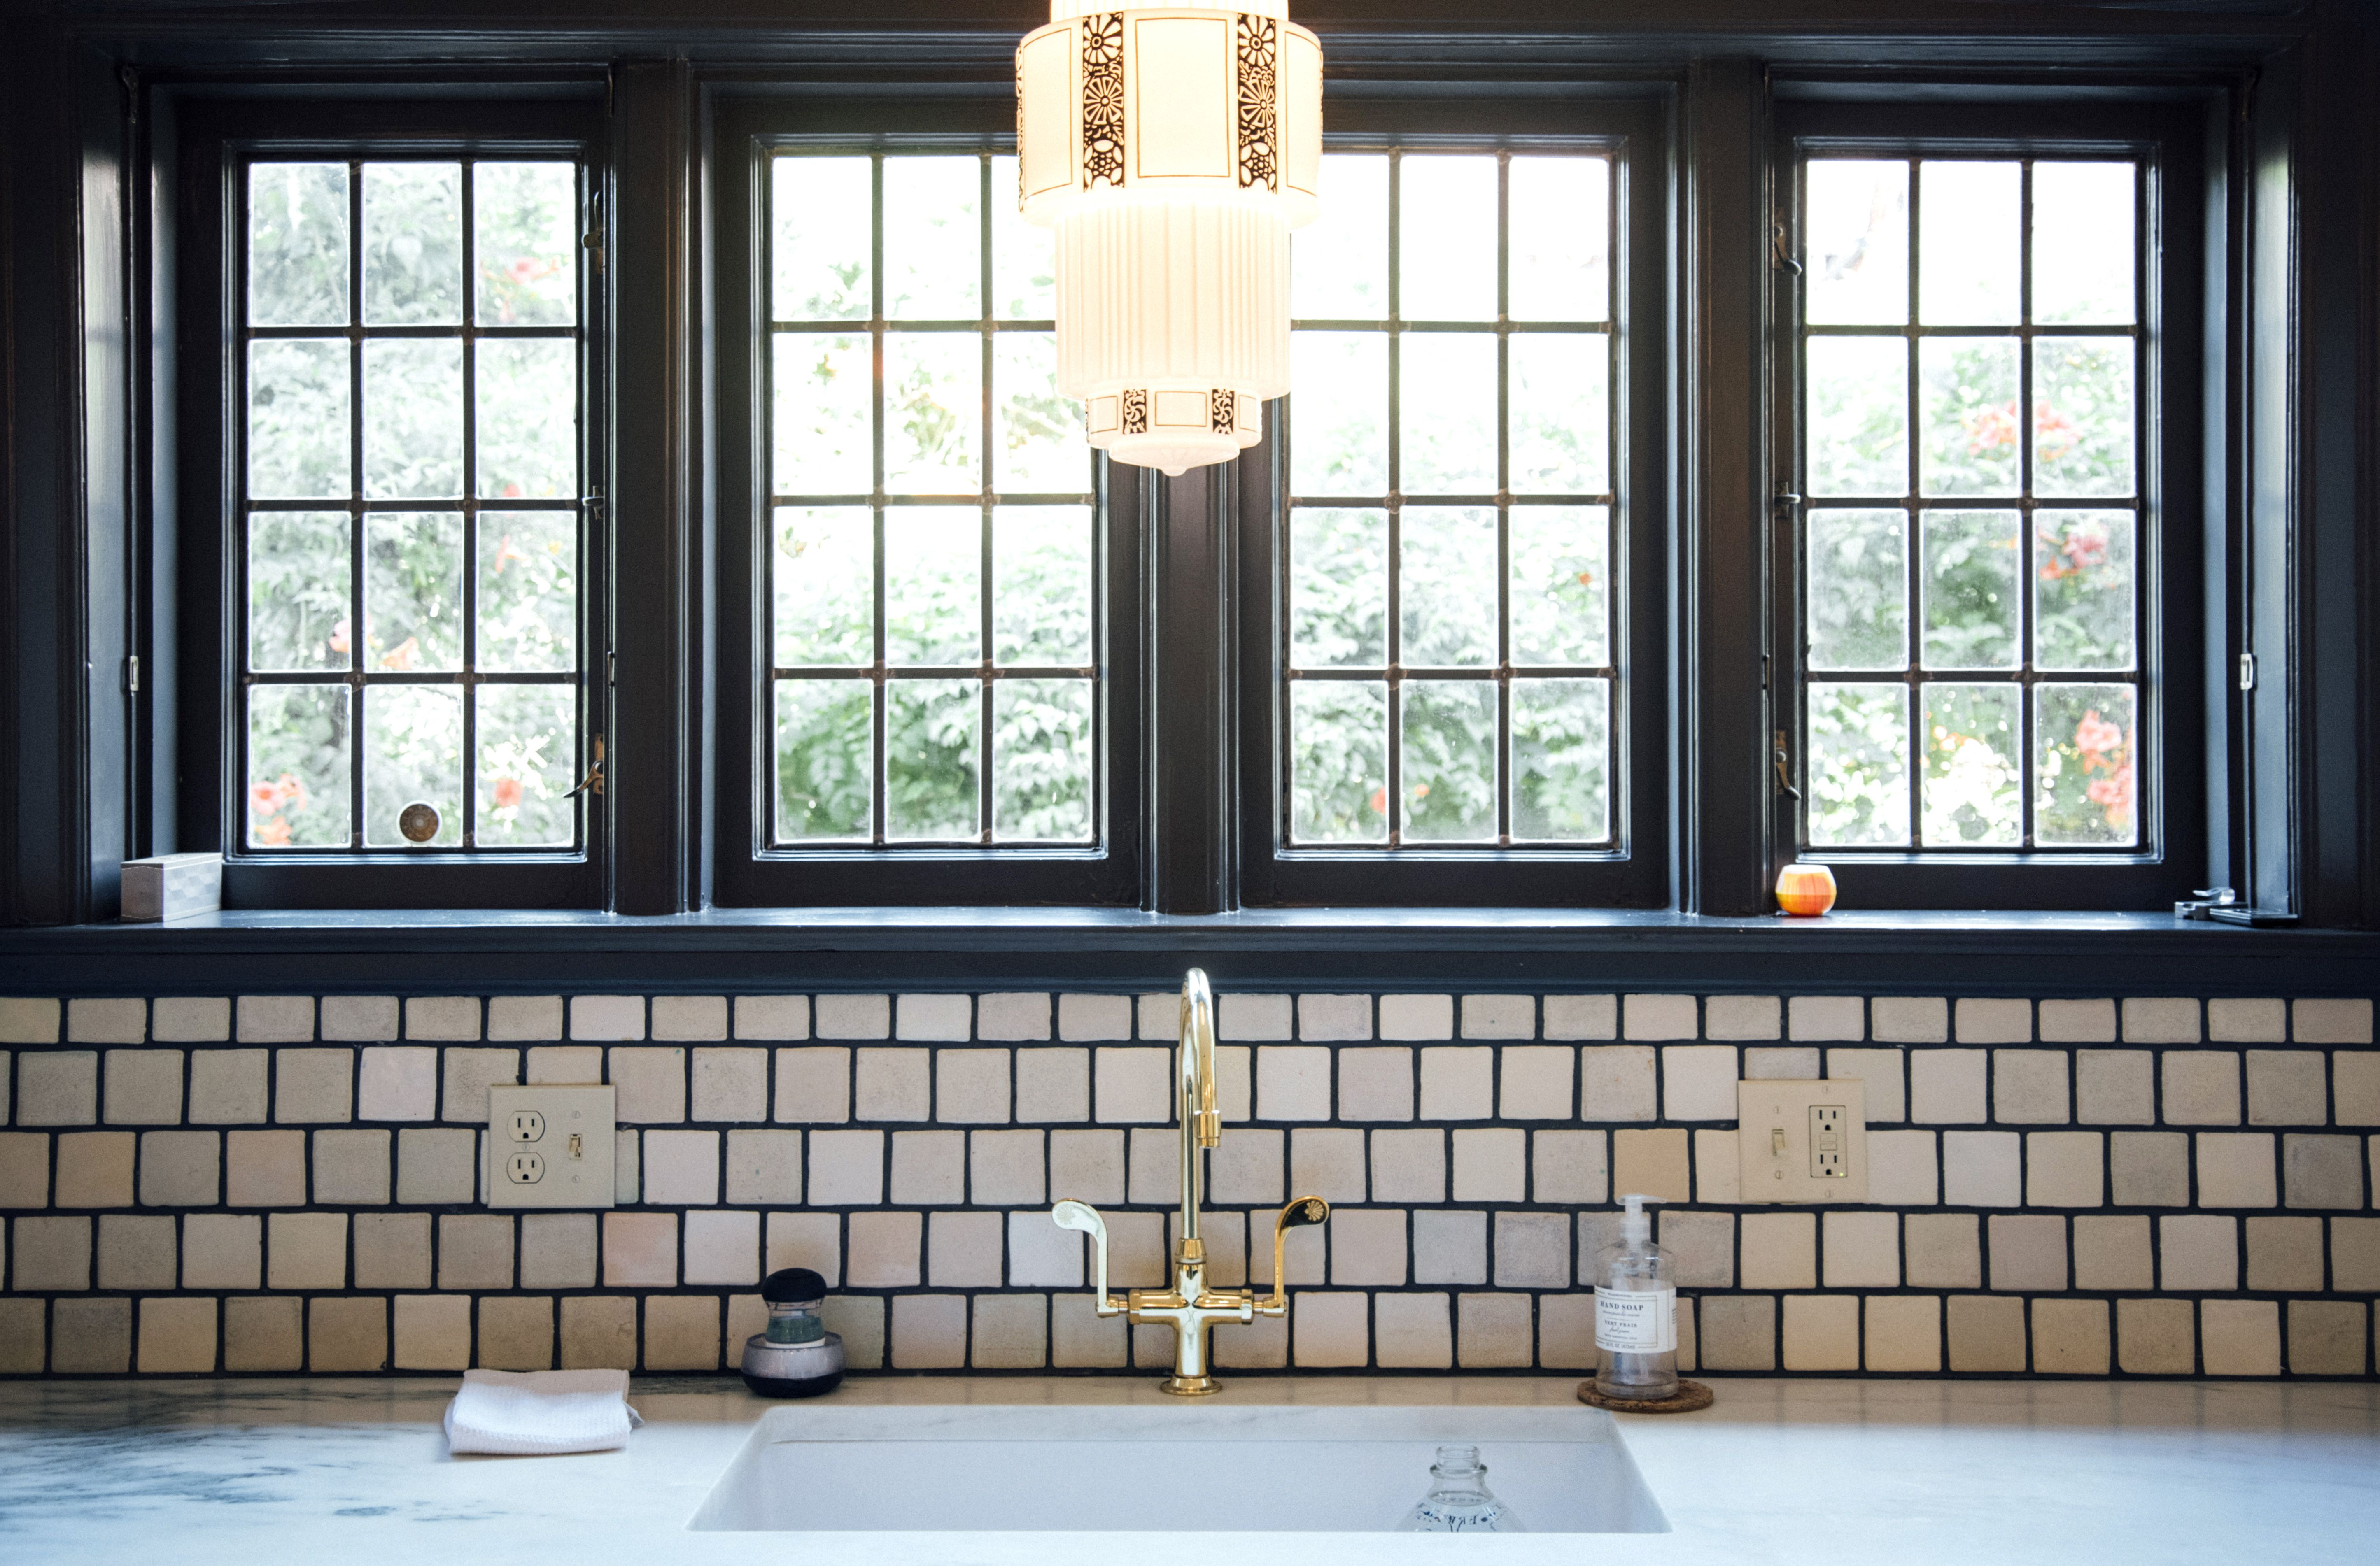 Handcrafted kitchen backsplash with pewabic tiles tile for the handcrafted kitchen backsplash with pewabic tiles dailygadgetfo Choice Image